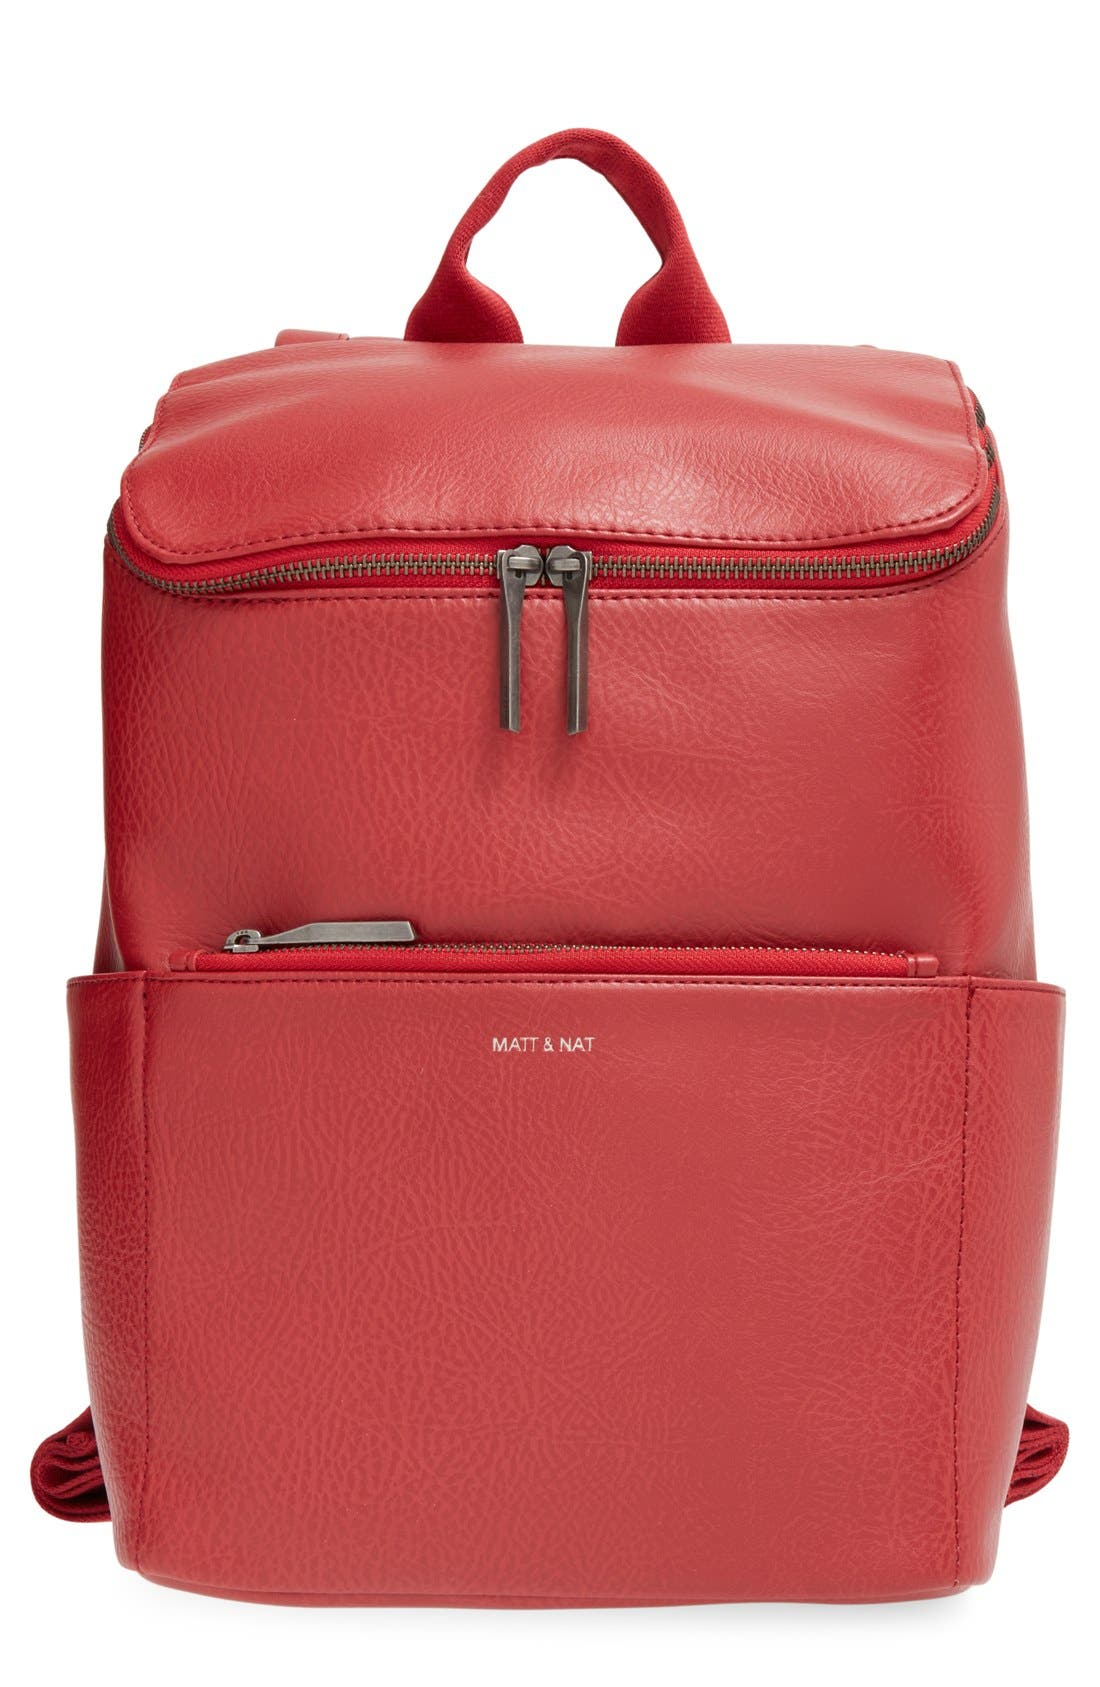 'Brave' Faux Leather Backpack,                             Main thumbnail 19, color,